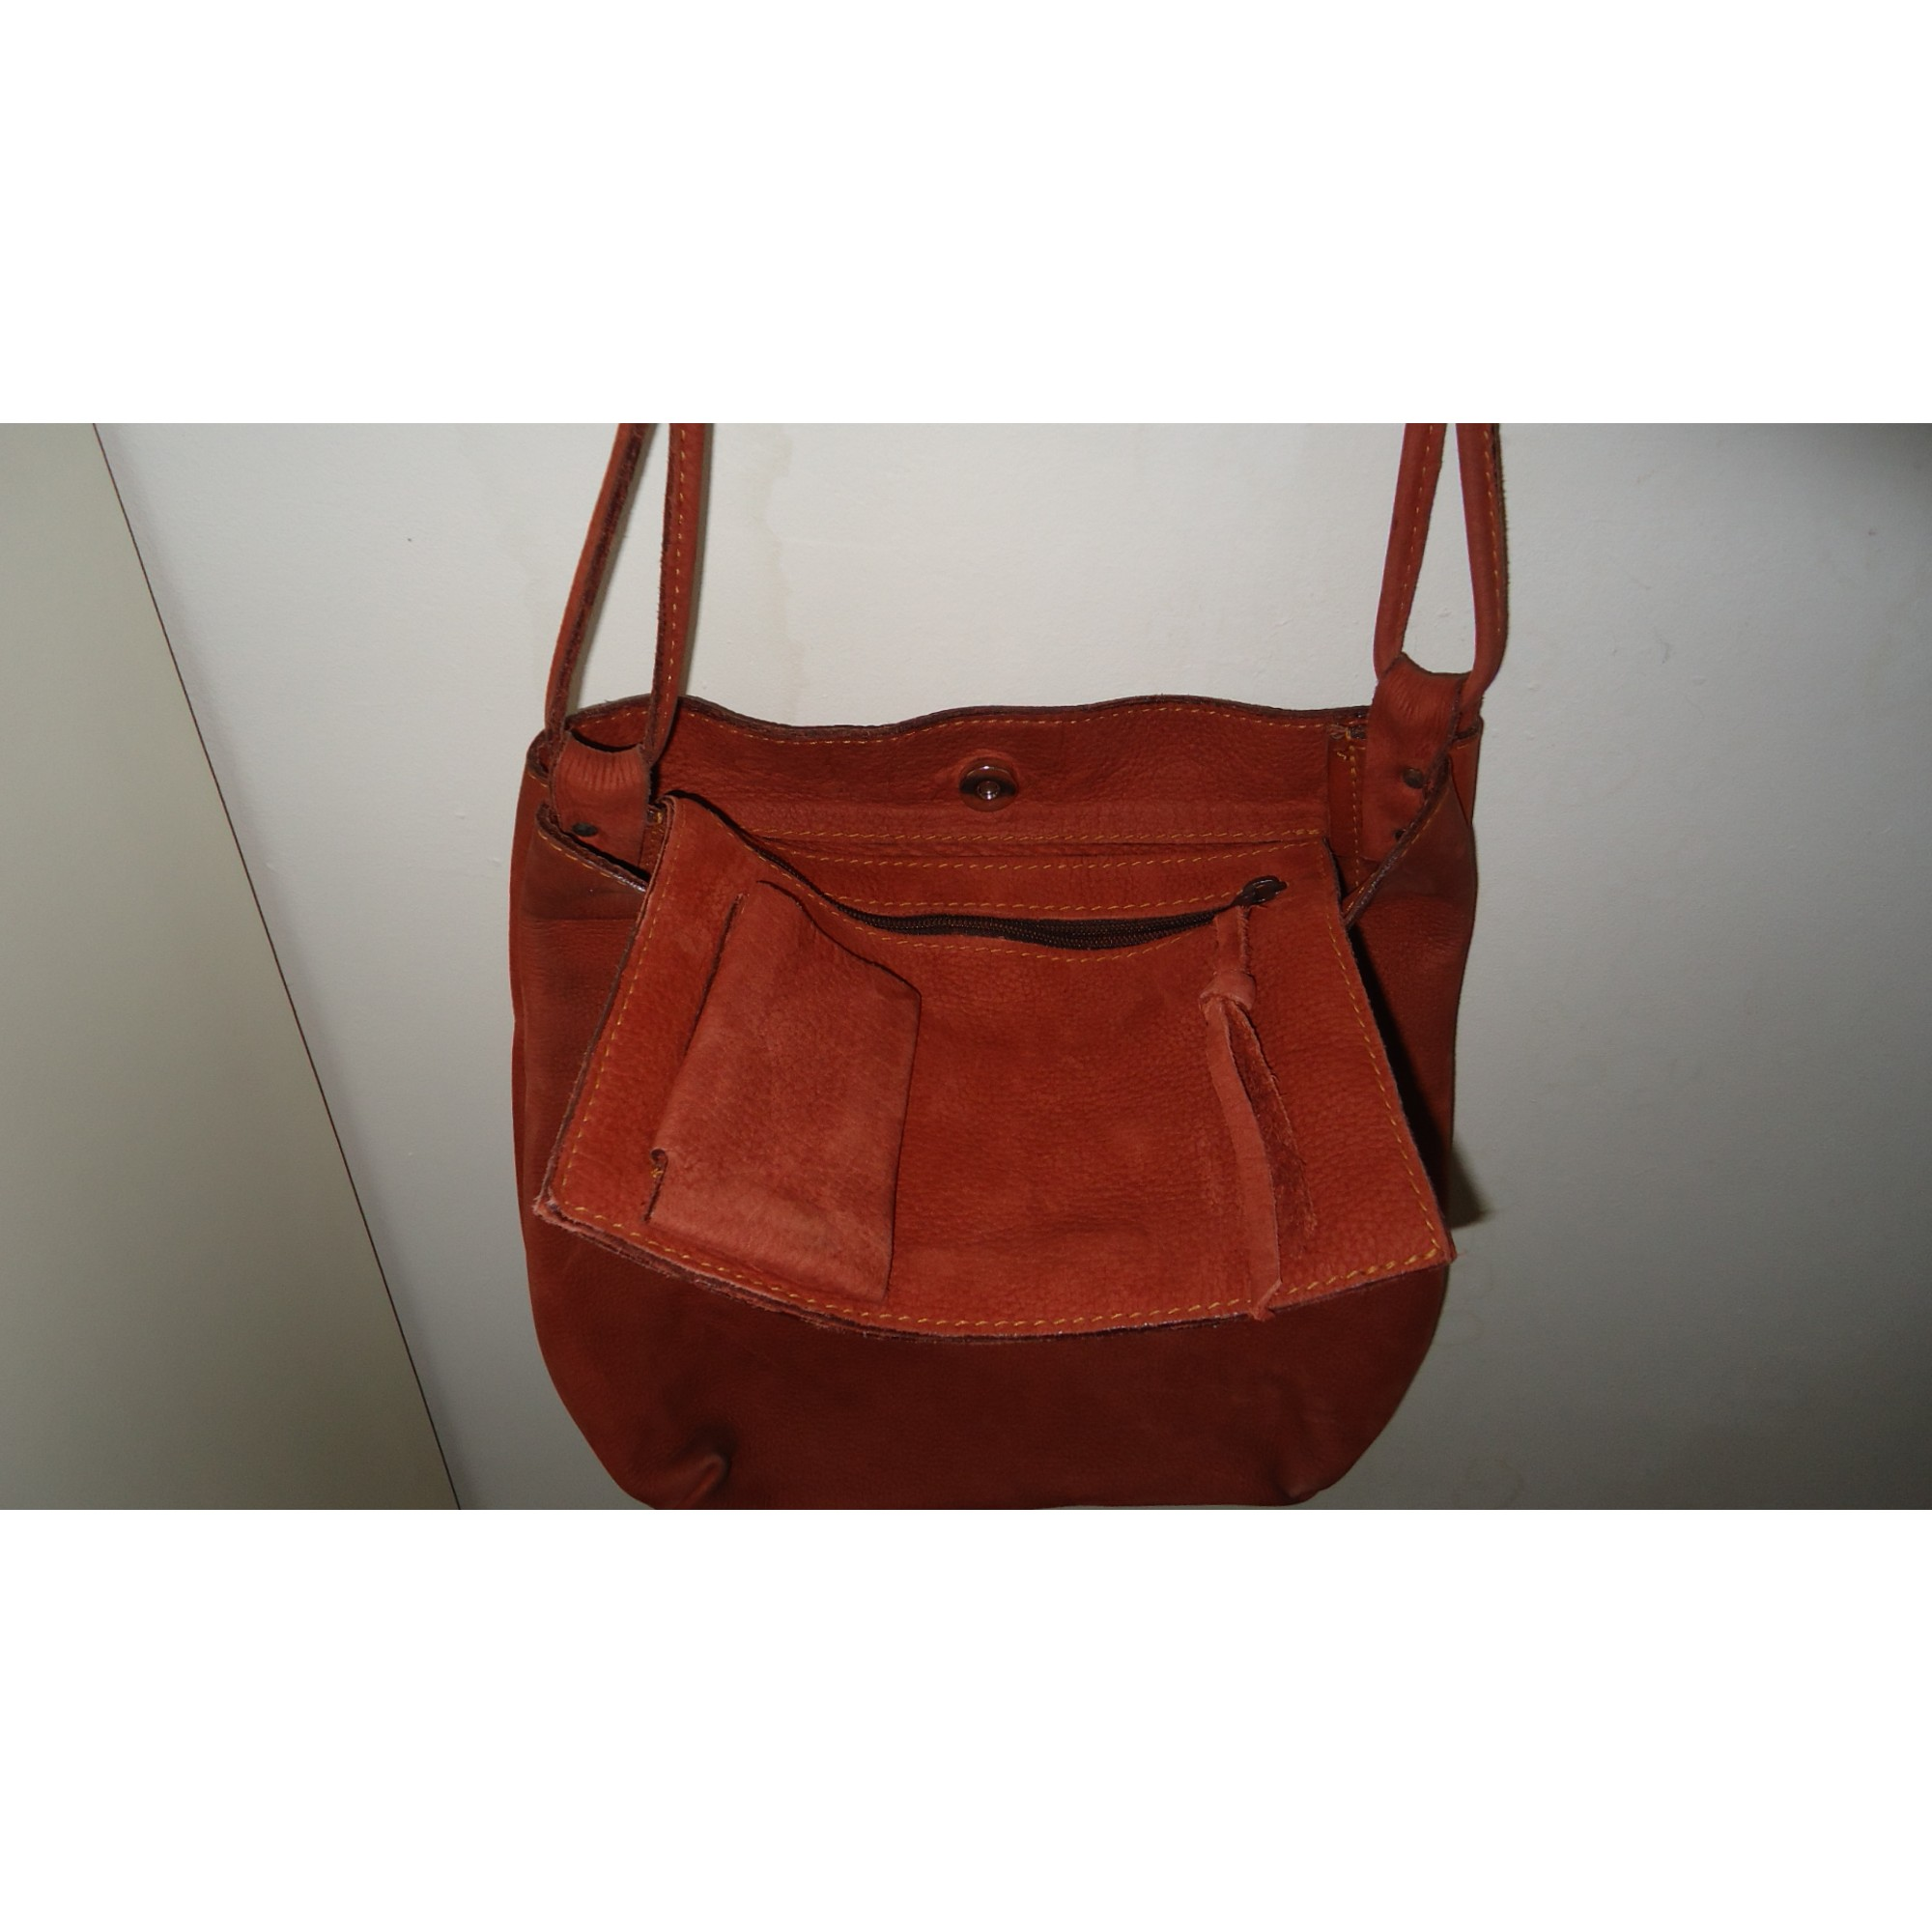 Leather Oversize Bag CHARLES ET CHARLUS terre battue ...